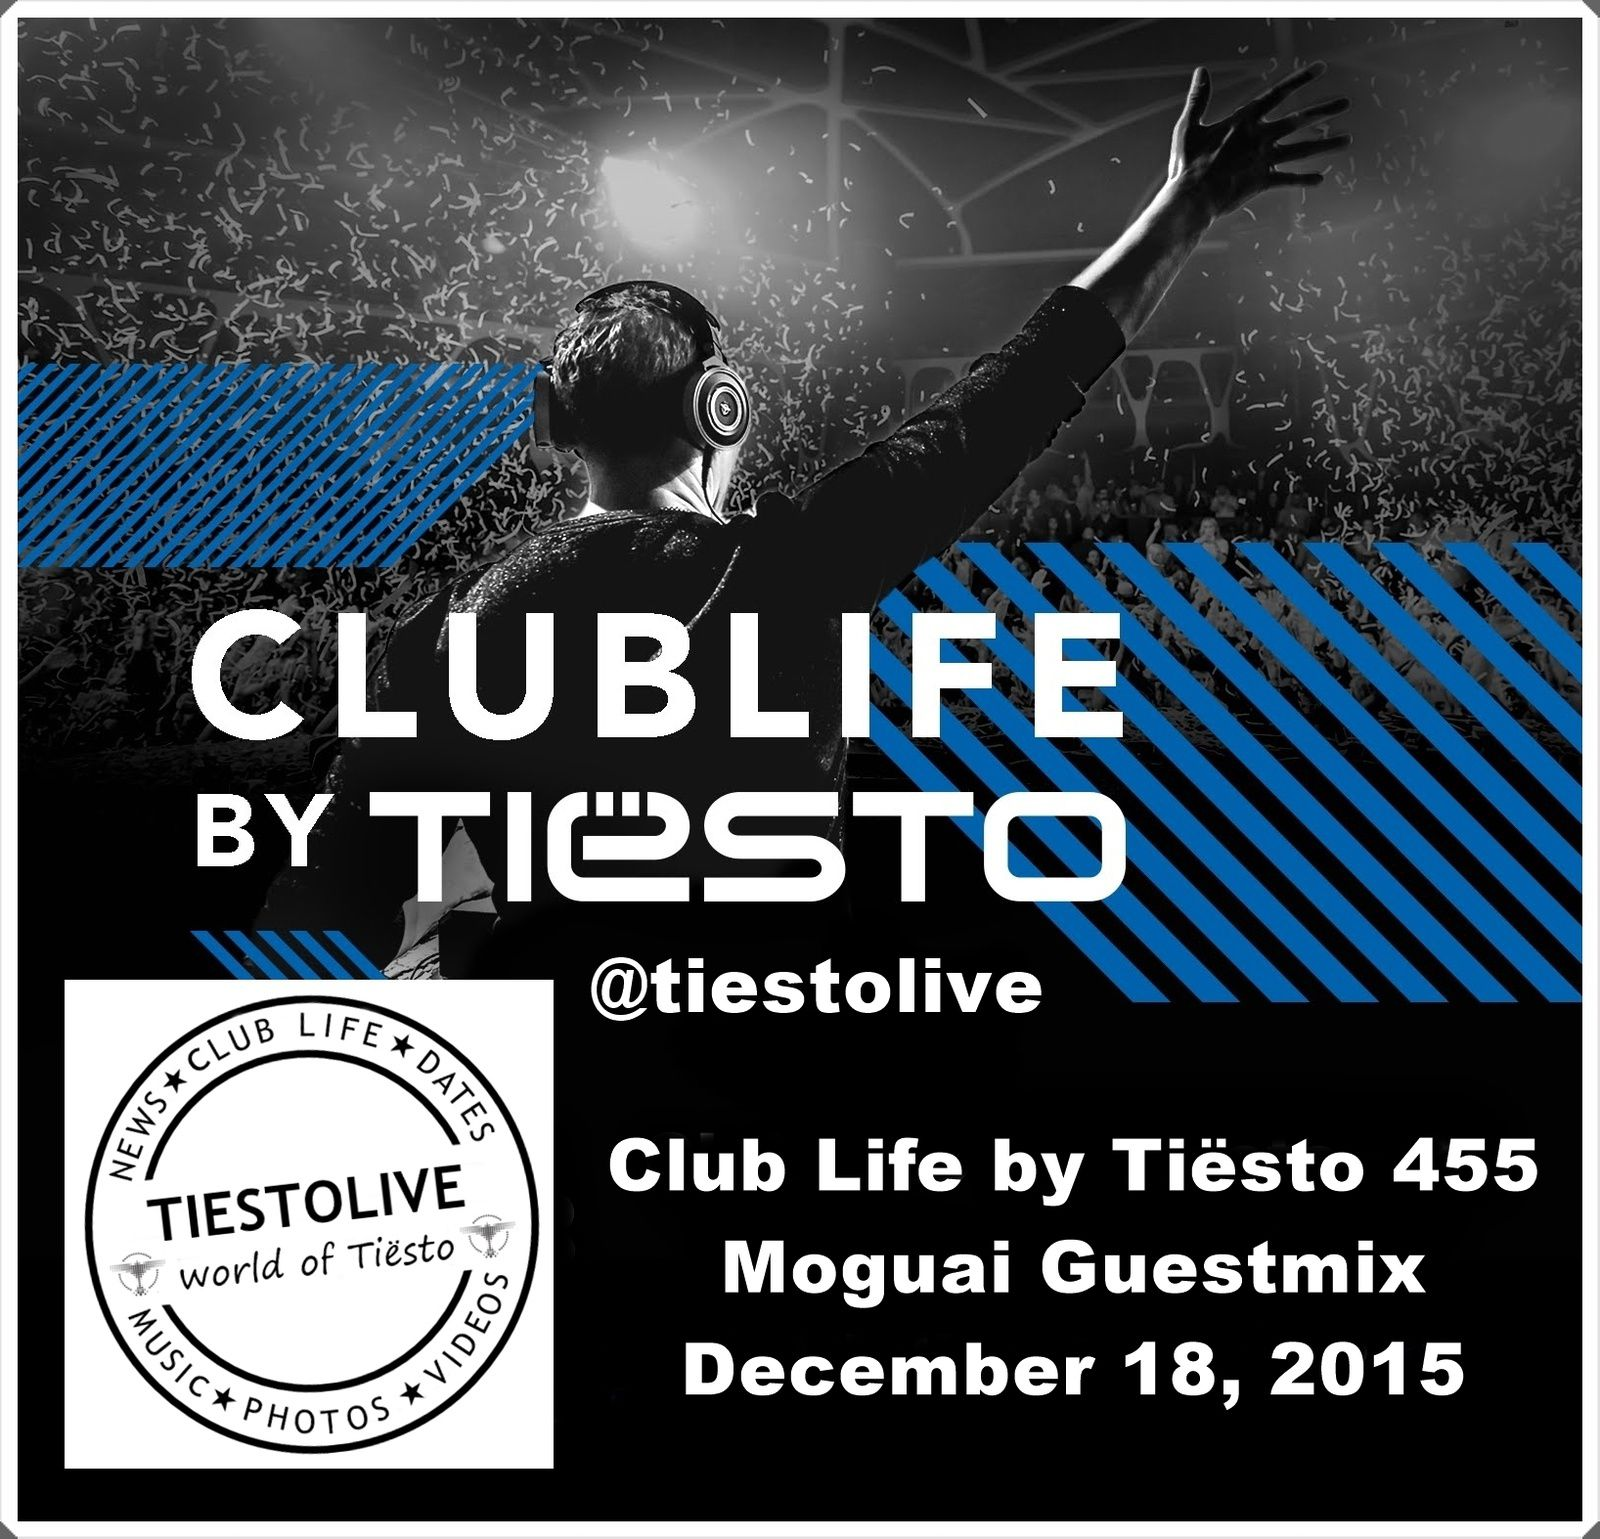 Club Life by Tiësto 455 - Moguai Guestmix - December 18, 2015